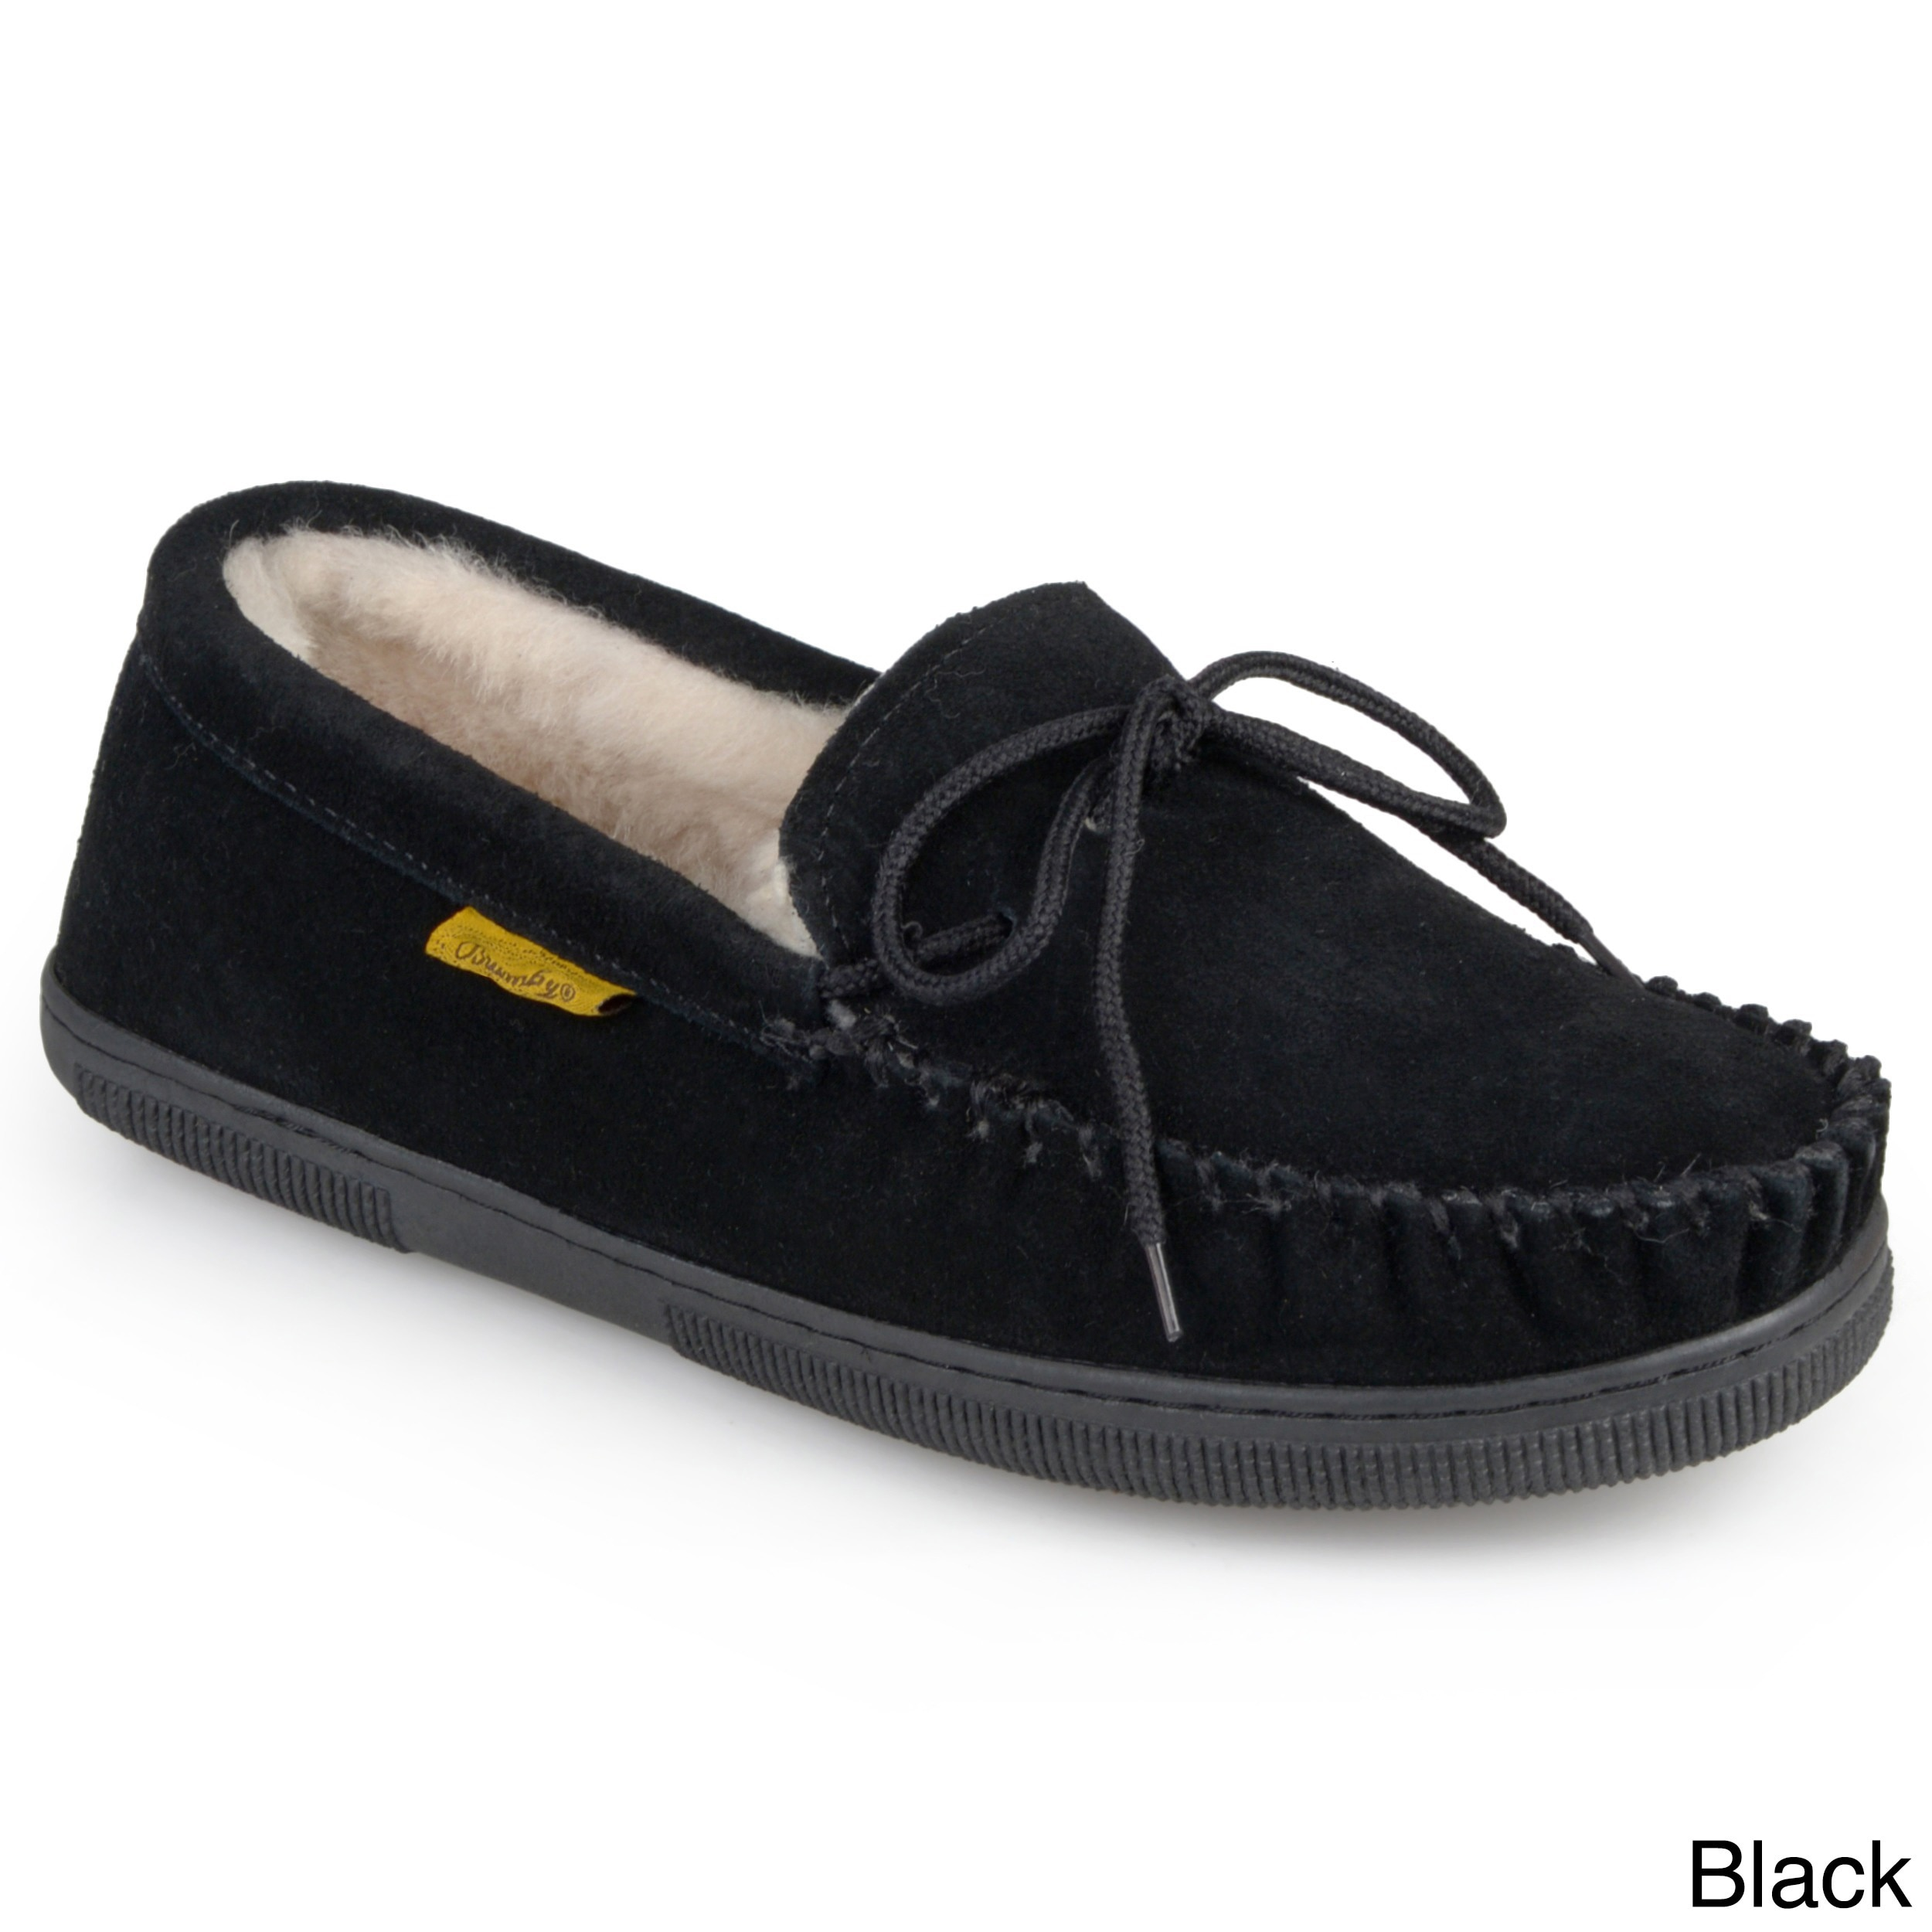 aa9c29a89c0 Shop Men s Moccasin Sheepskin Slippers - Free Shipping Today - Overstock -  3572508